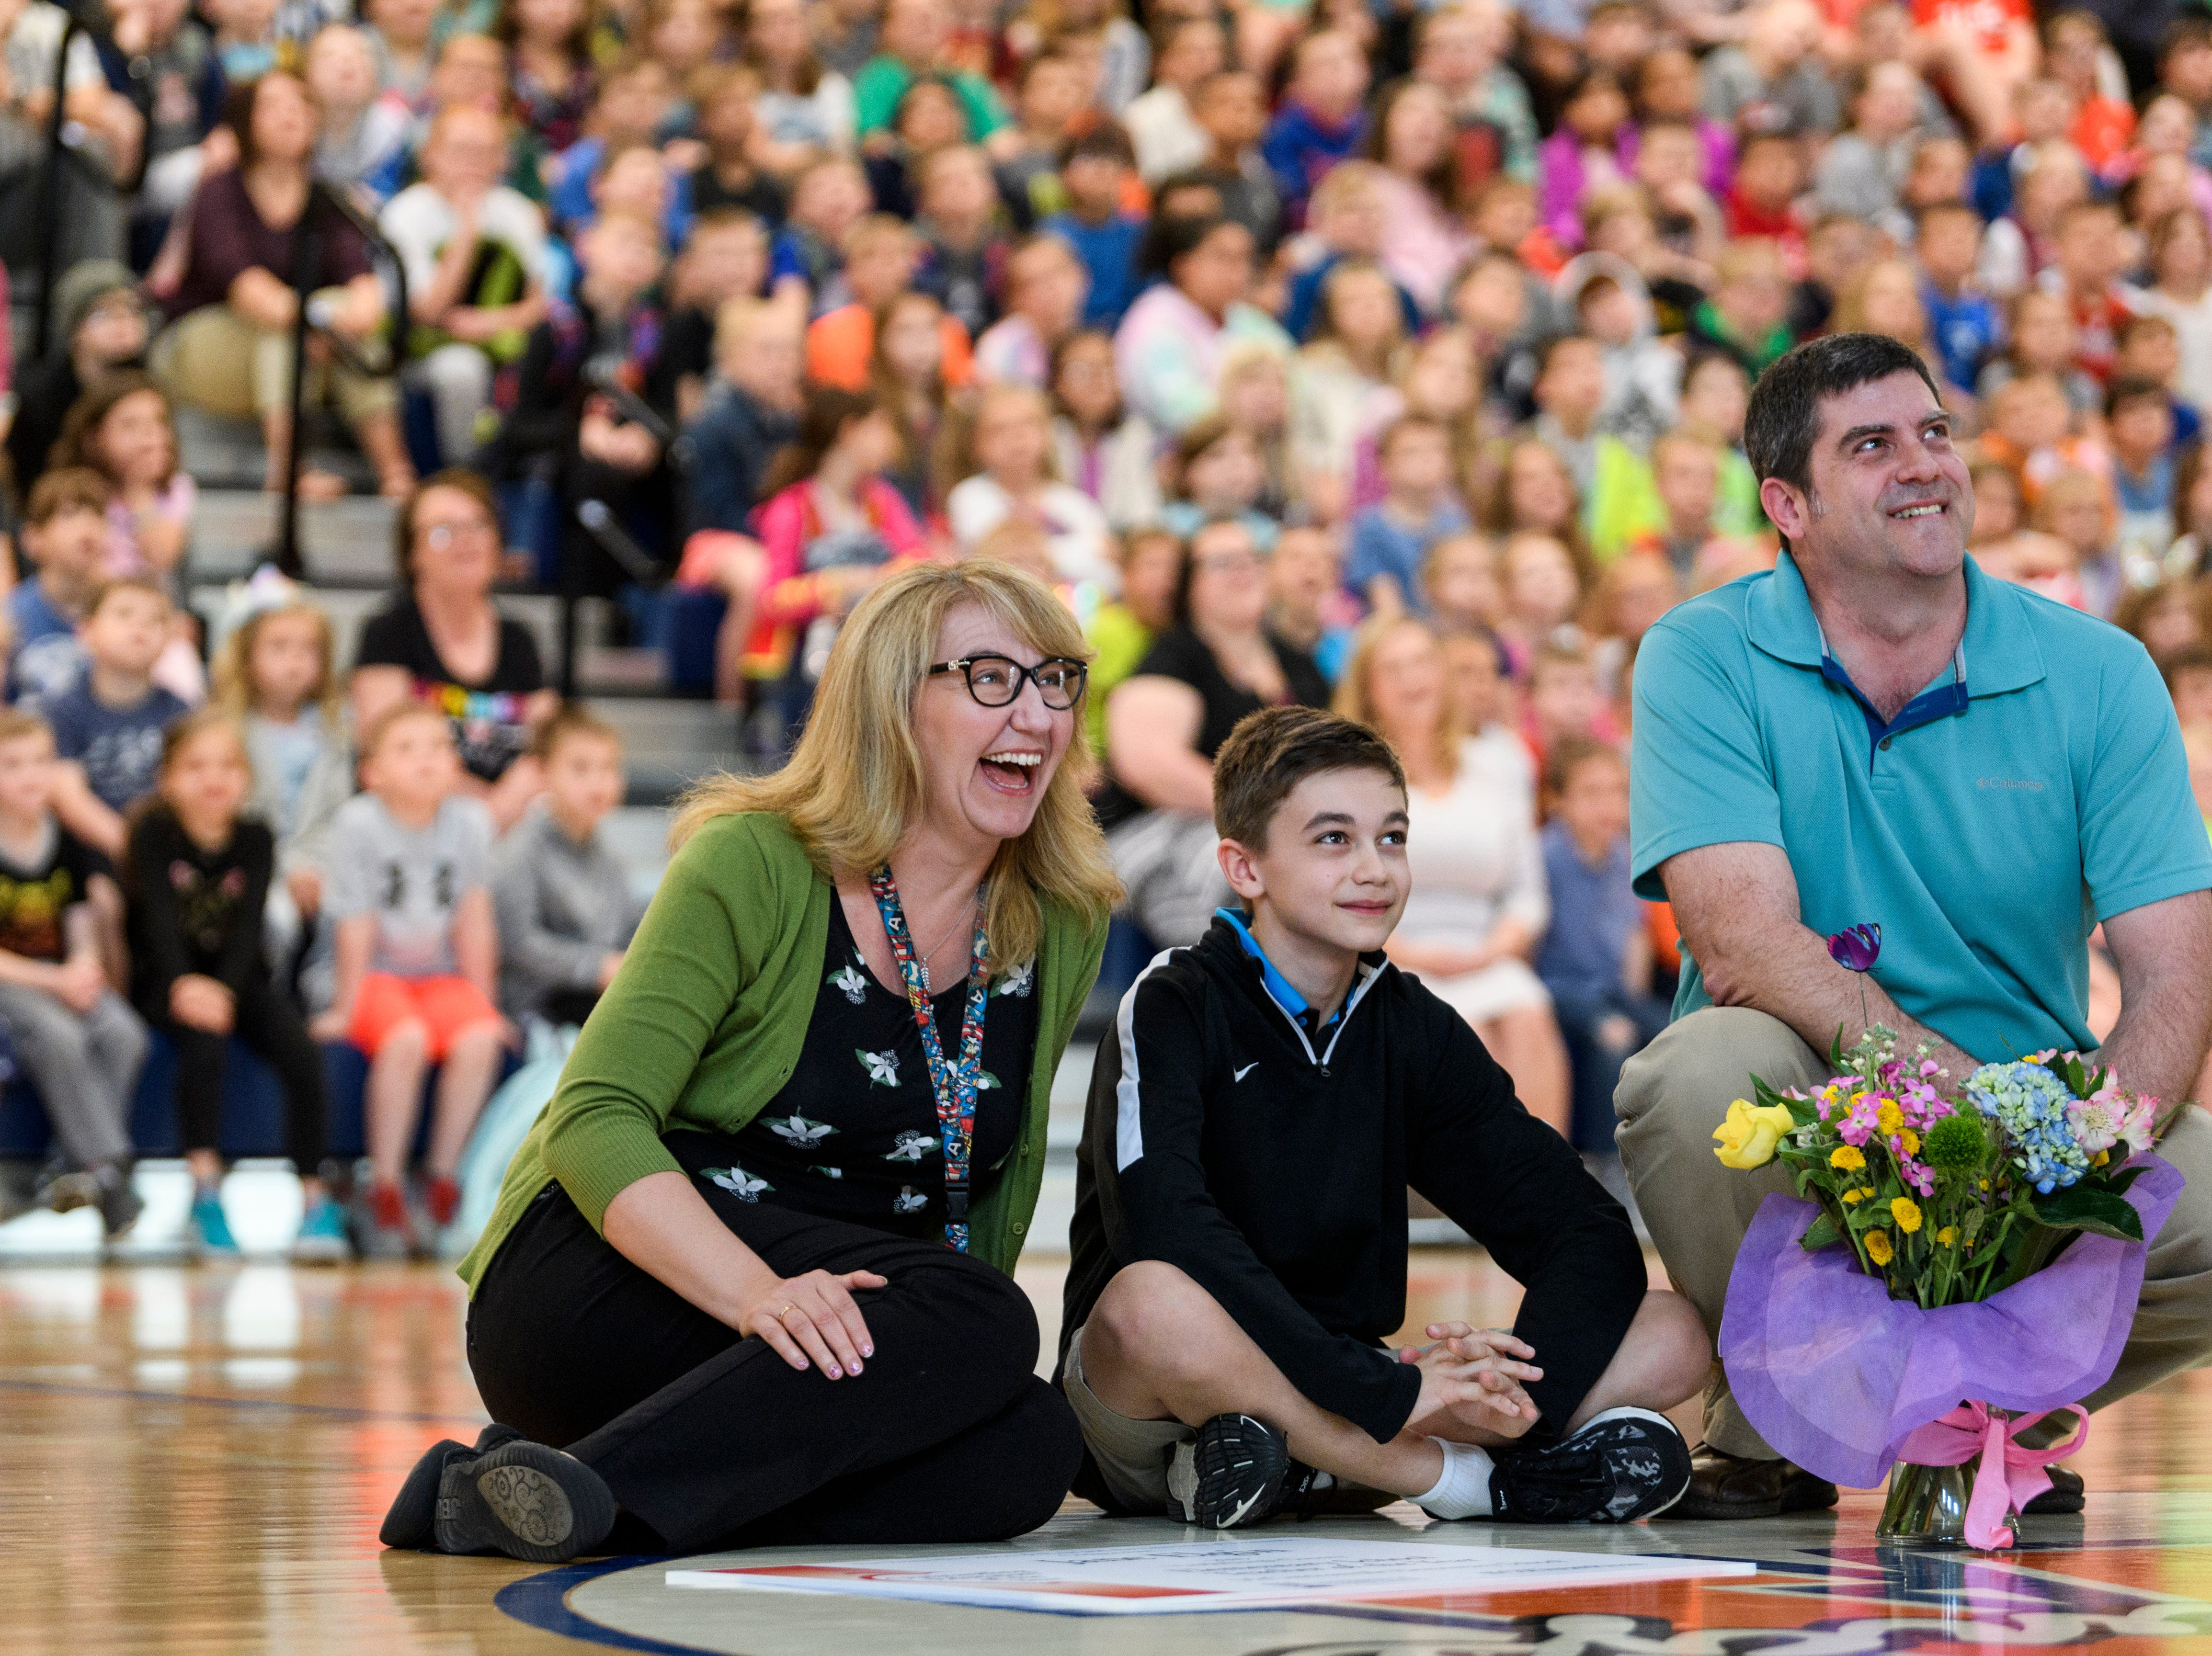 Jane Elgin, from left, laughs as she watches a video with her 13-year-old son Anthony, 13, and husband Brian Elgin during a school assembly held in her honor at McCutchanville School in Evansville, Ind., Wednesday, April 10, 2019. She was named Vanderburgh County's 2019 Elementary School Teacher of the Year.